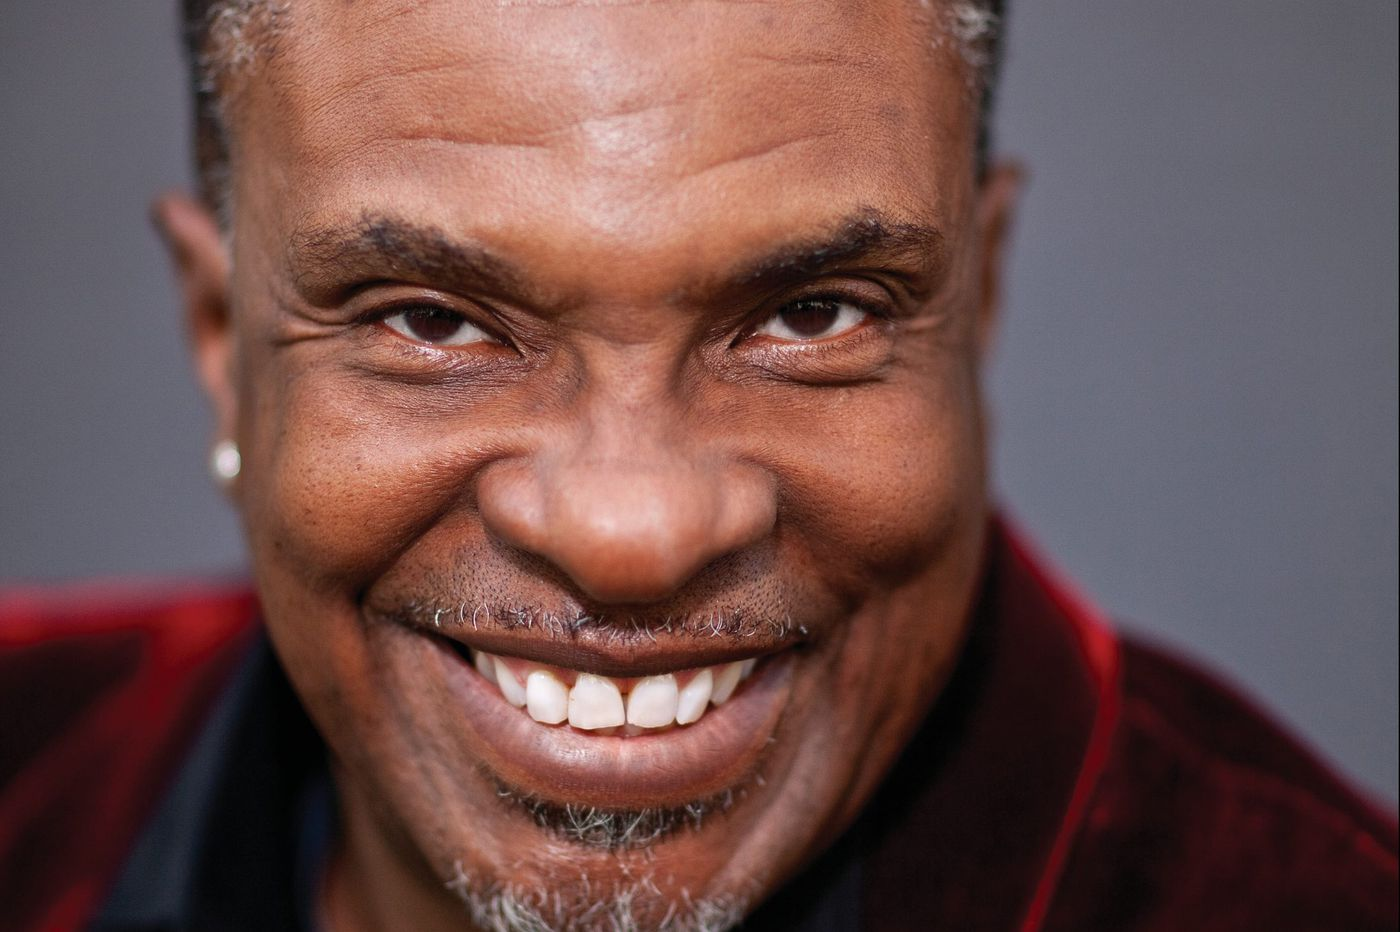 Actor Keith David connects slave saga 'Barracoon' to the modern black experience for the First Person Arts Festival | Elizabeth Wellington